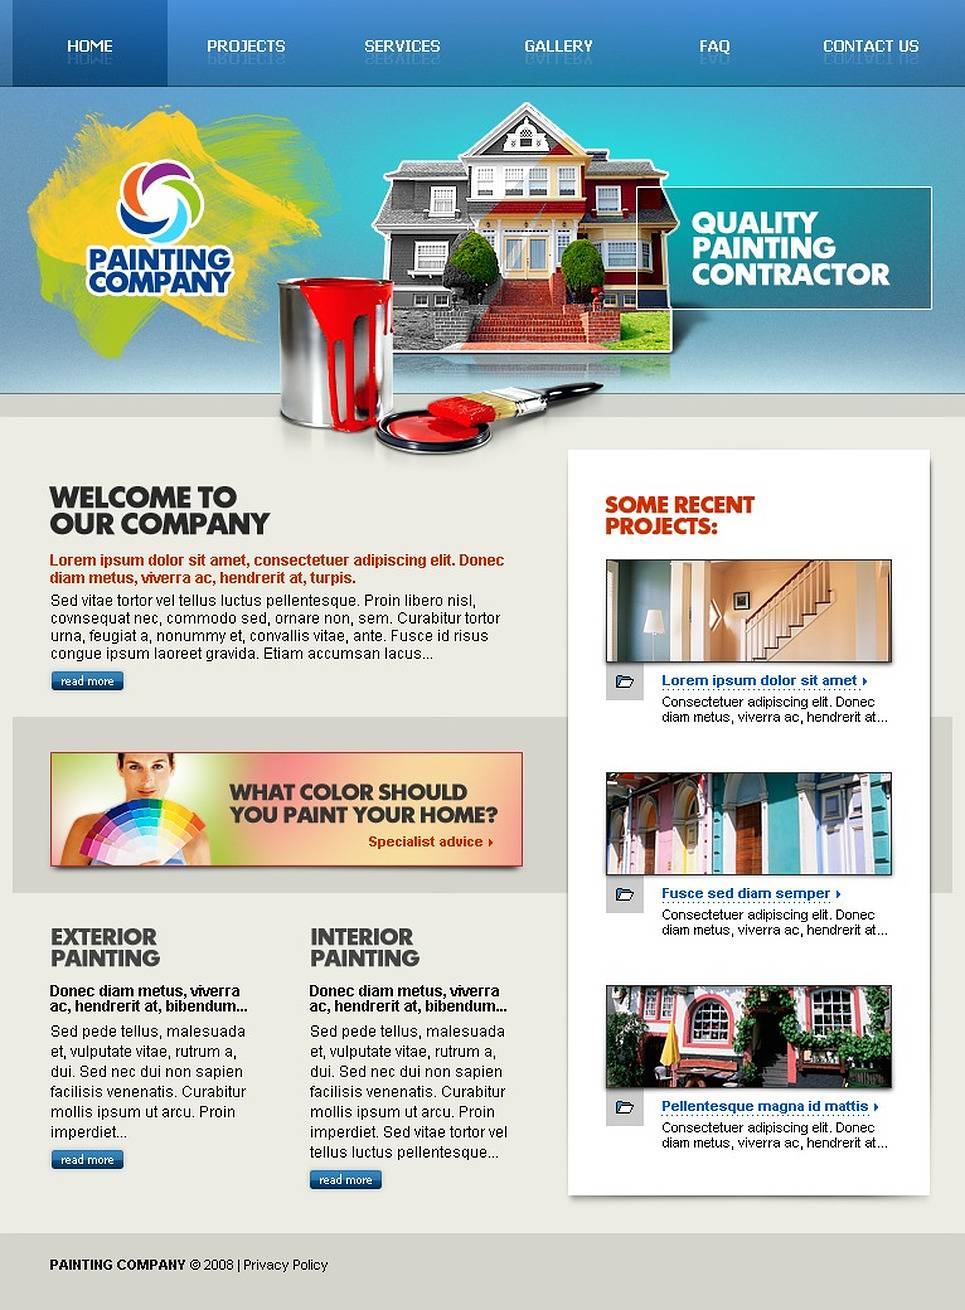 Painting Company Website Template